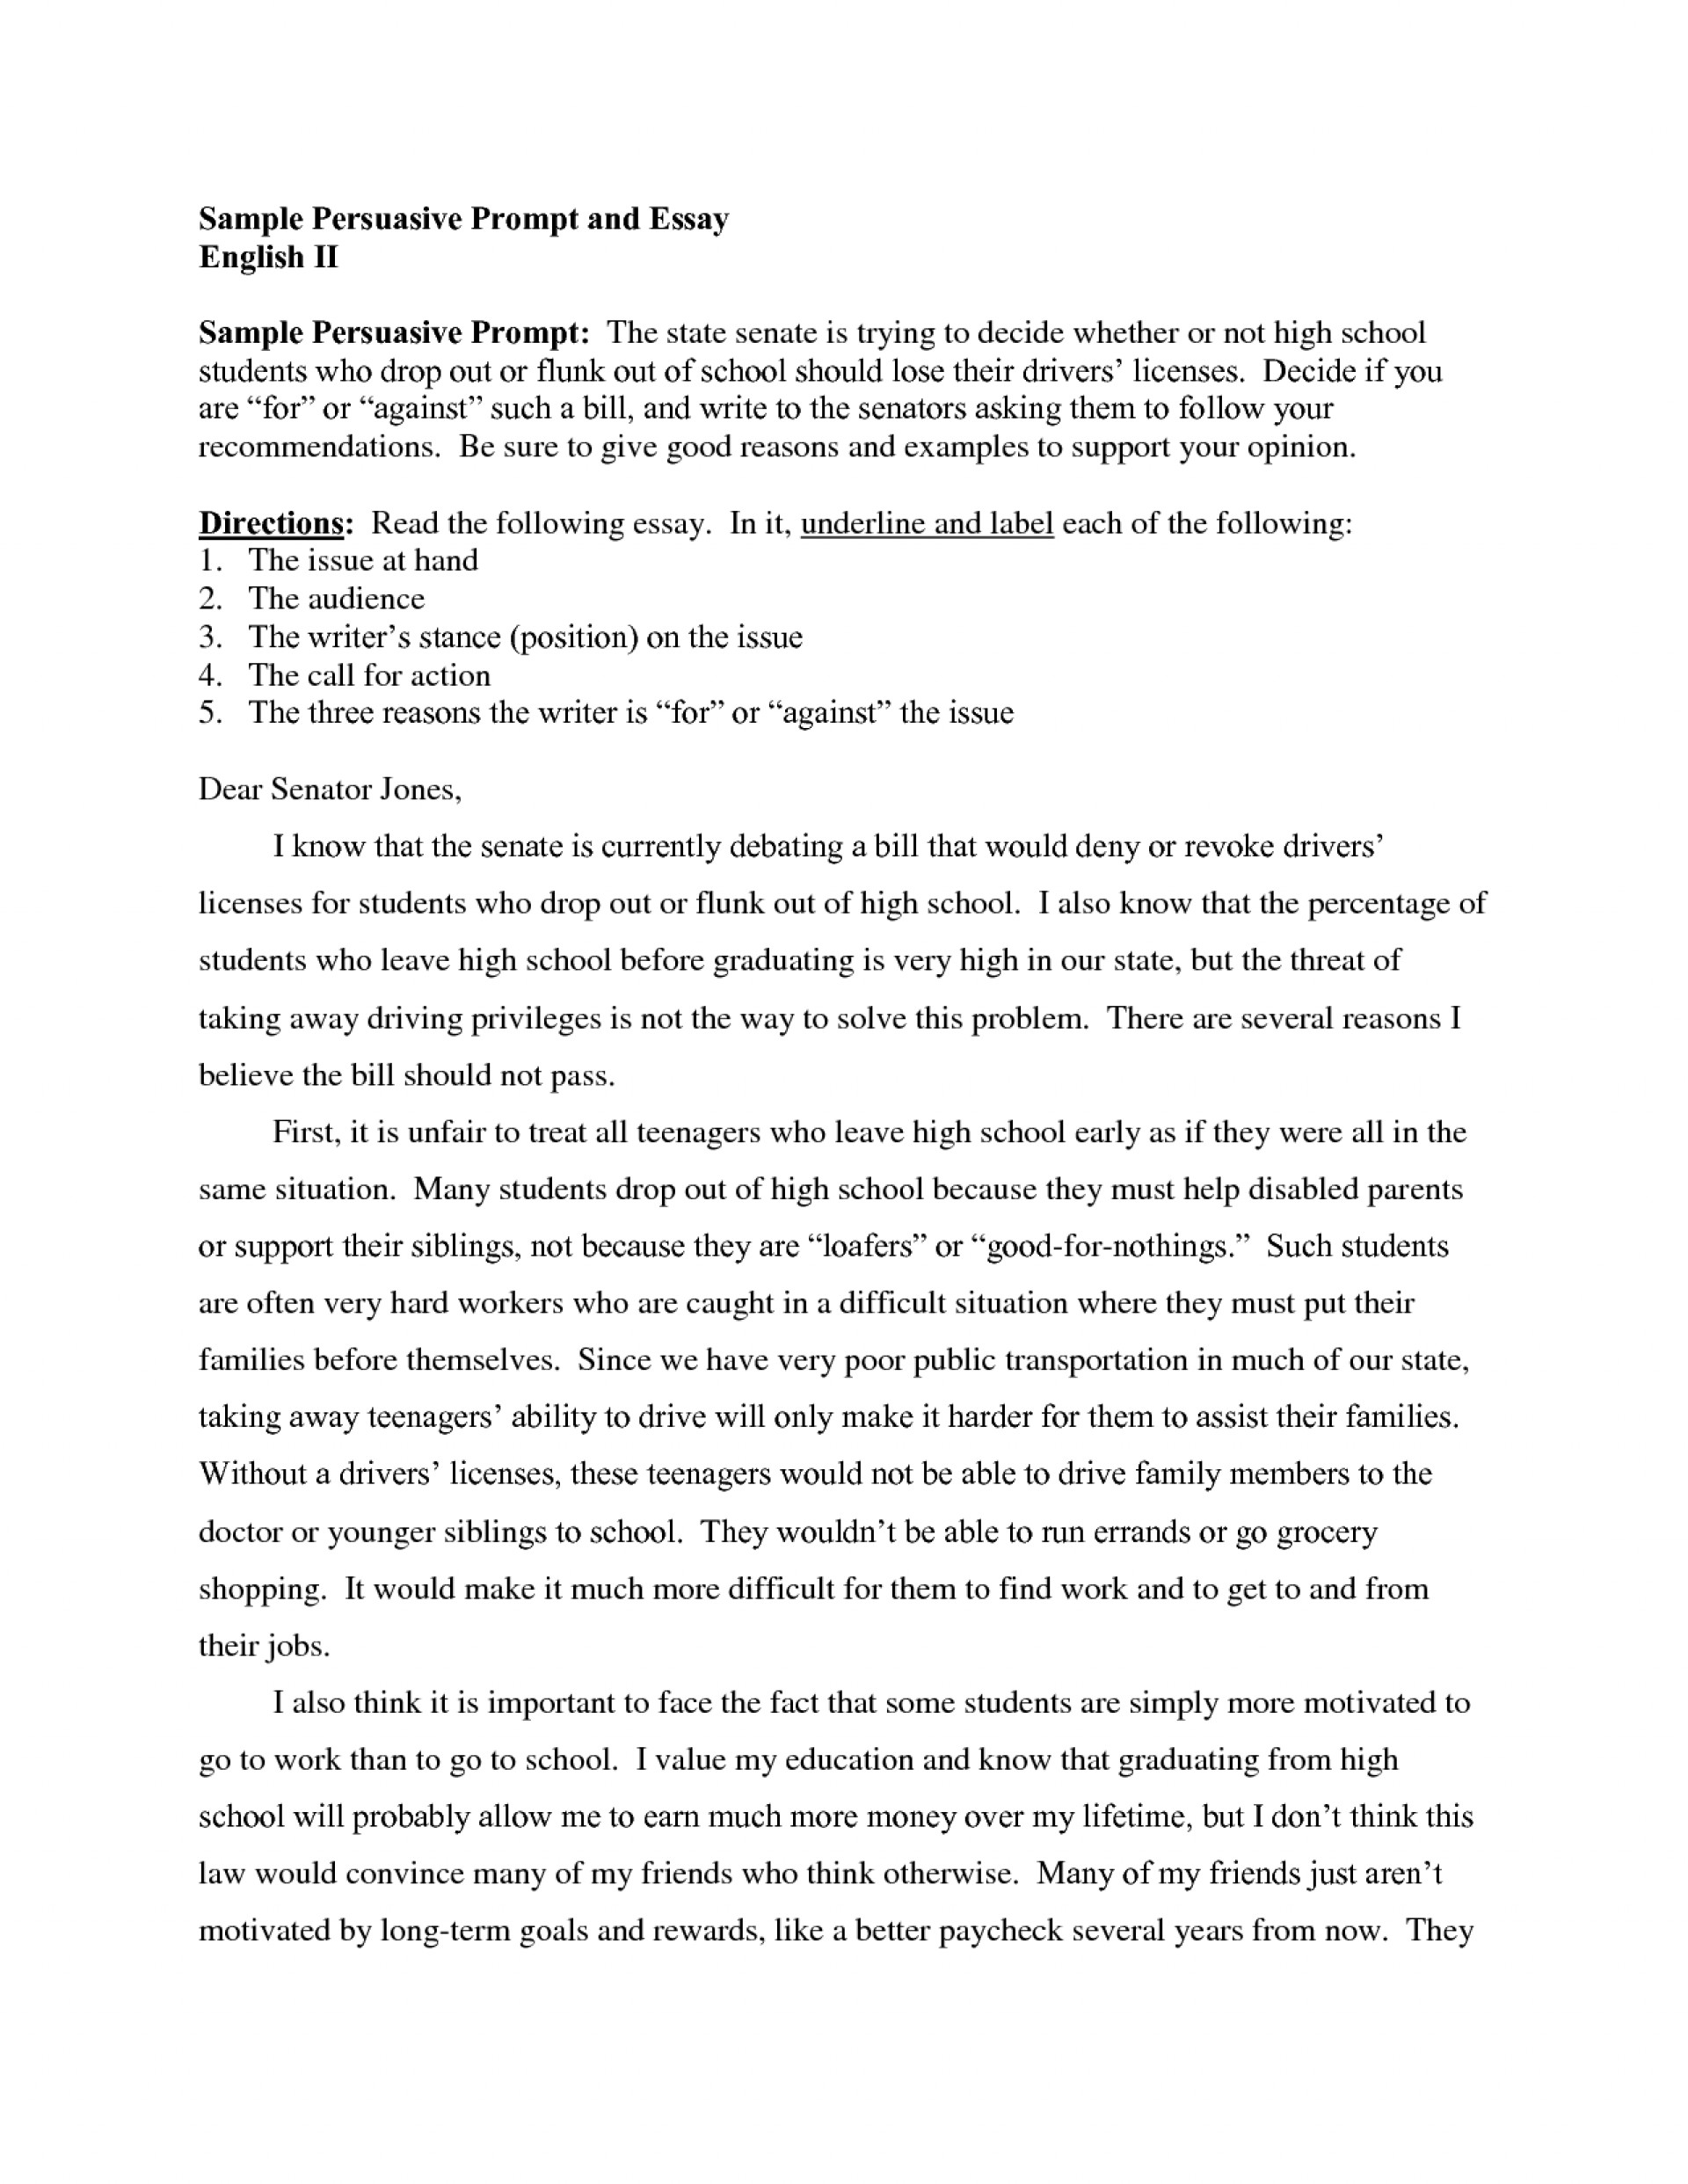 After High School Essay  Argumentative Essay Sample High School also What Is A Thesis Of An Essay  Education Research Paper Topic Suggestions Persuasive  Essay About High School